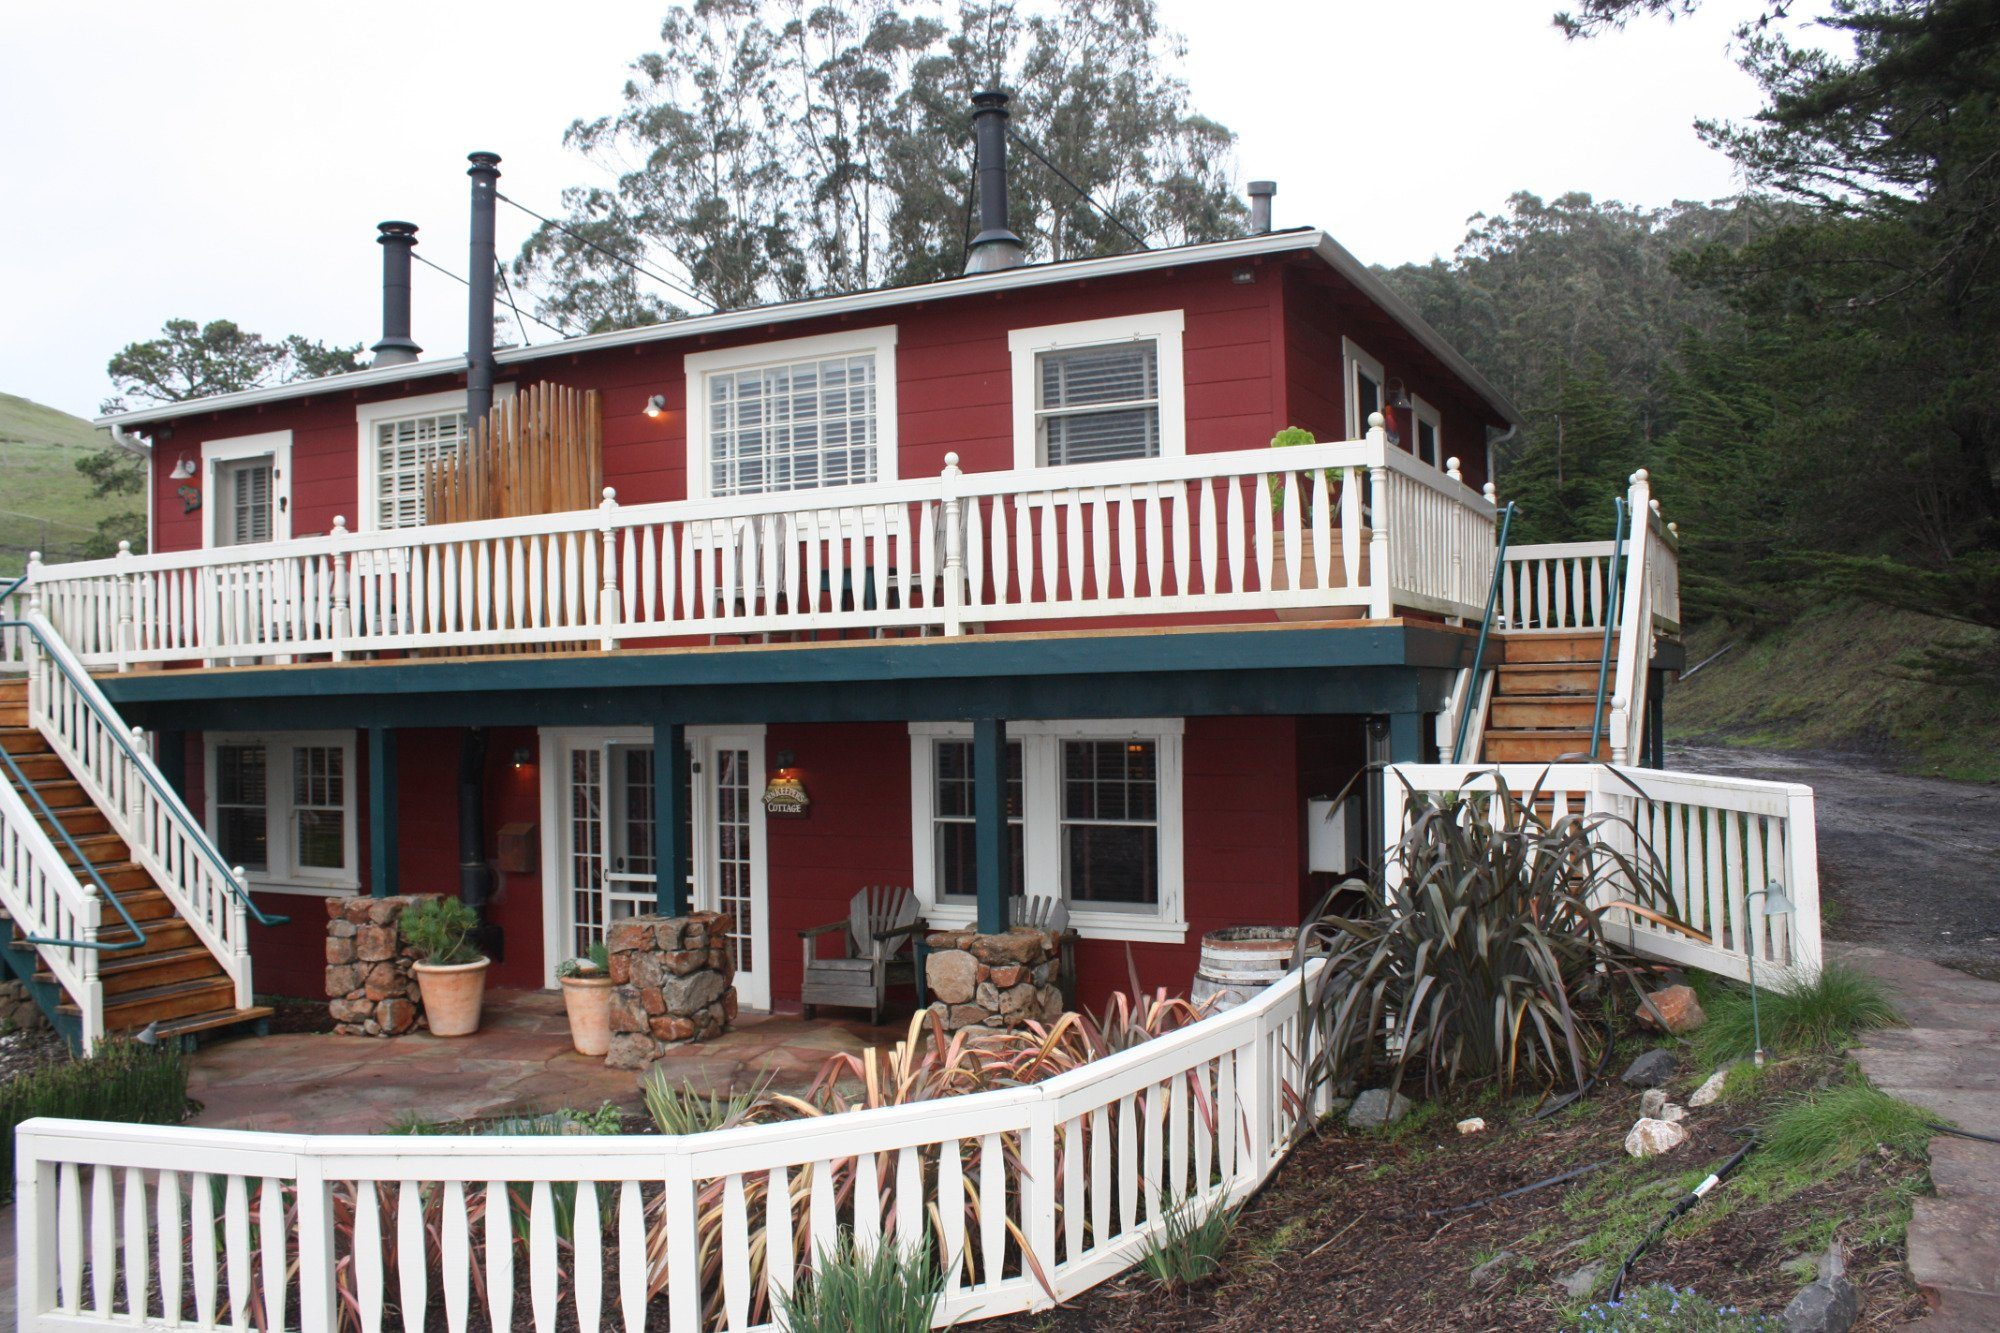 Nick's Cove Cottages, Marshall, California